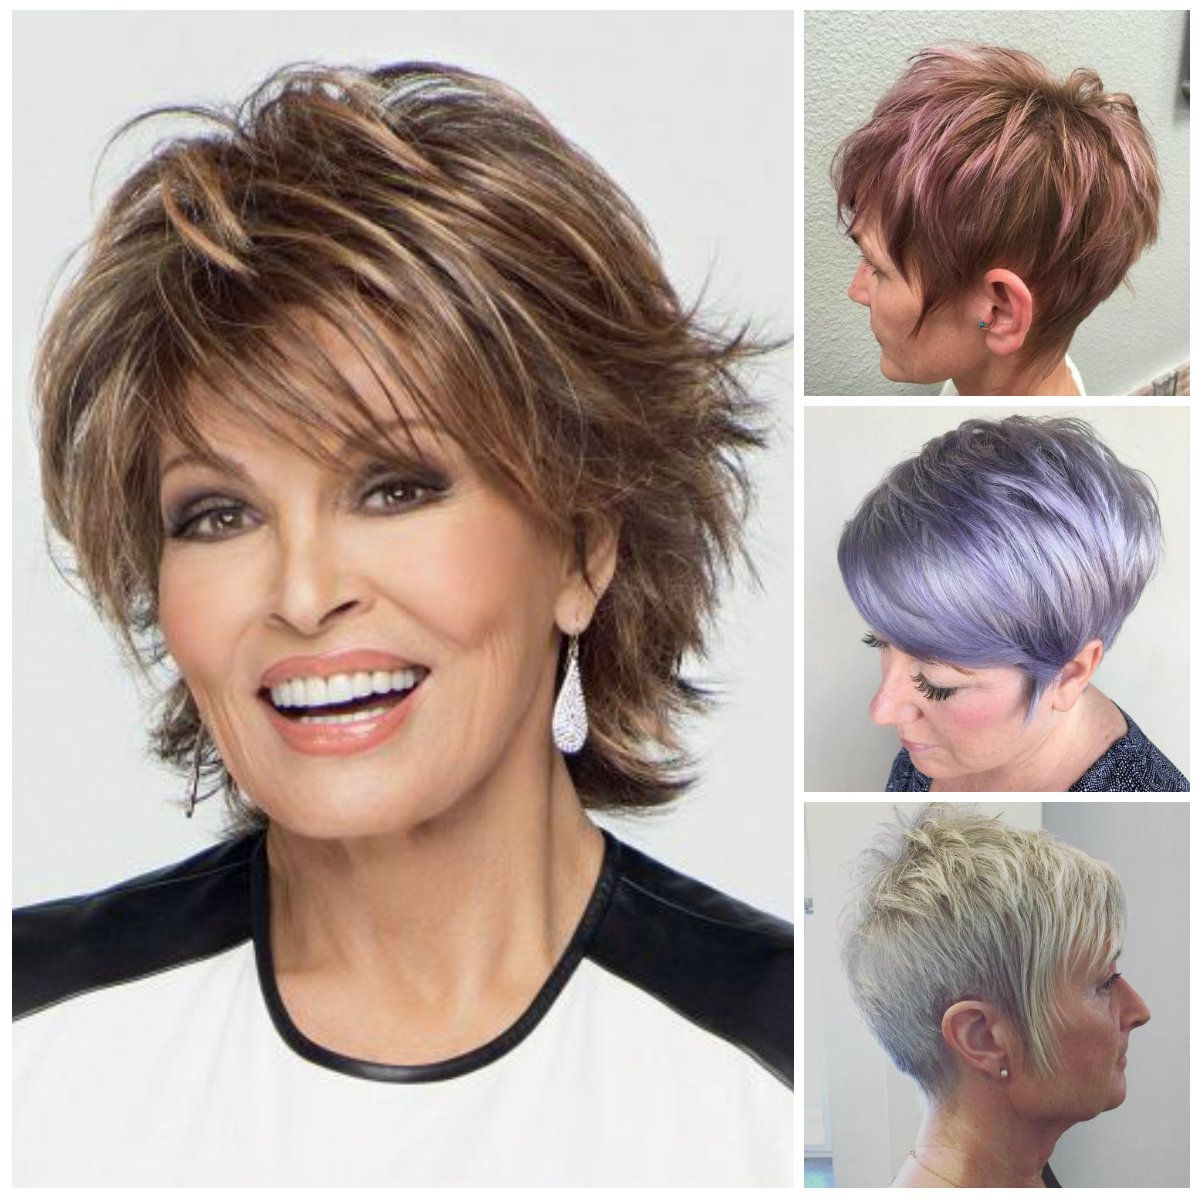 2019 Short Hairstyles For Over 60 Years Old With Glasses Awesome Pertaining To Short Haircuts For Glasses (View 17 of 25)